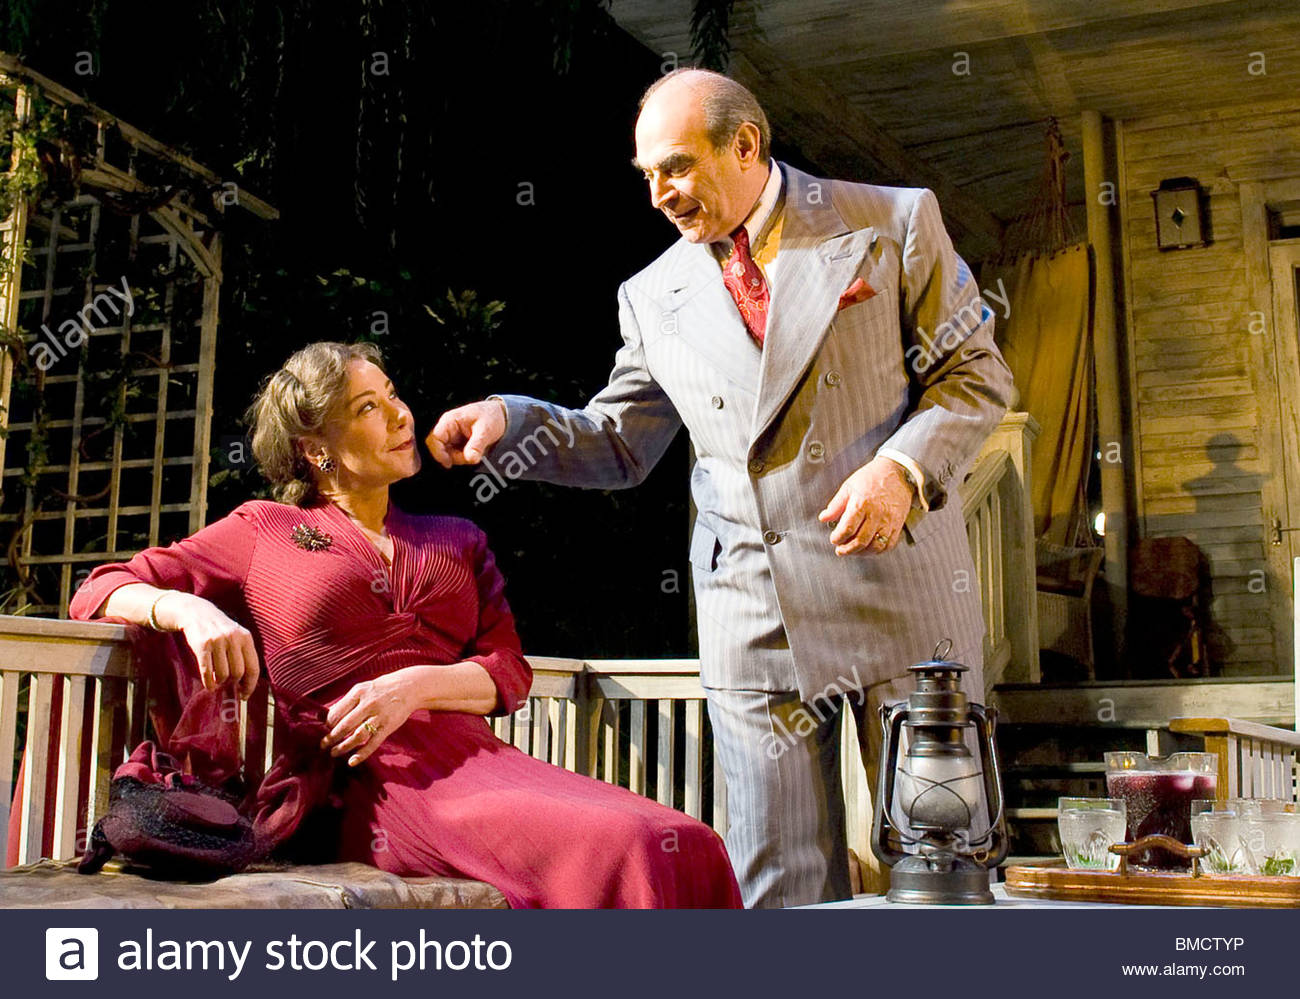 All My Sons by Arthur Miller,directed by Howard Davies.With ,David Suchet as Joe Keller,Zoe Wanamaker as Kate Keller. - Stock Image